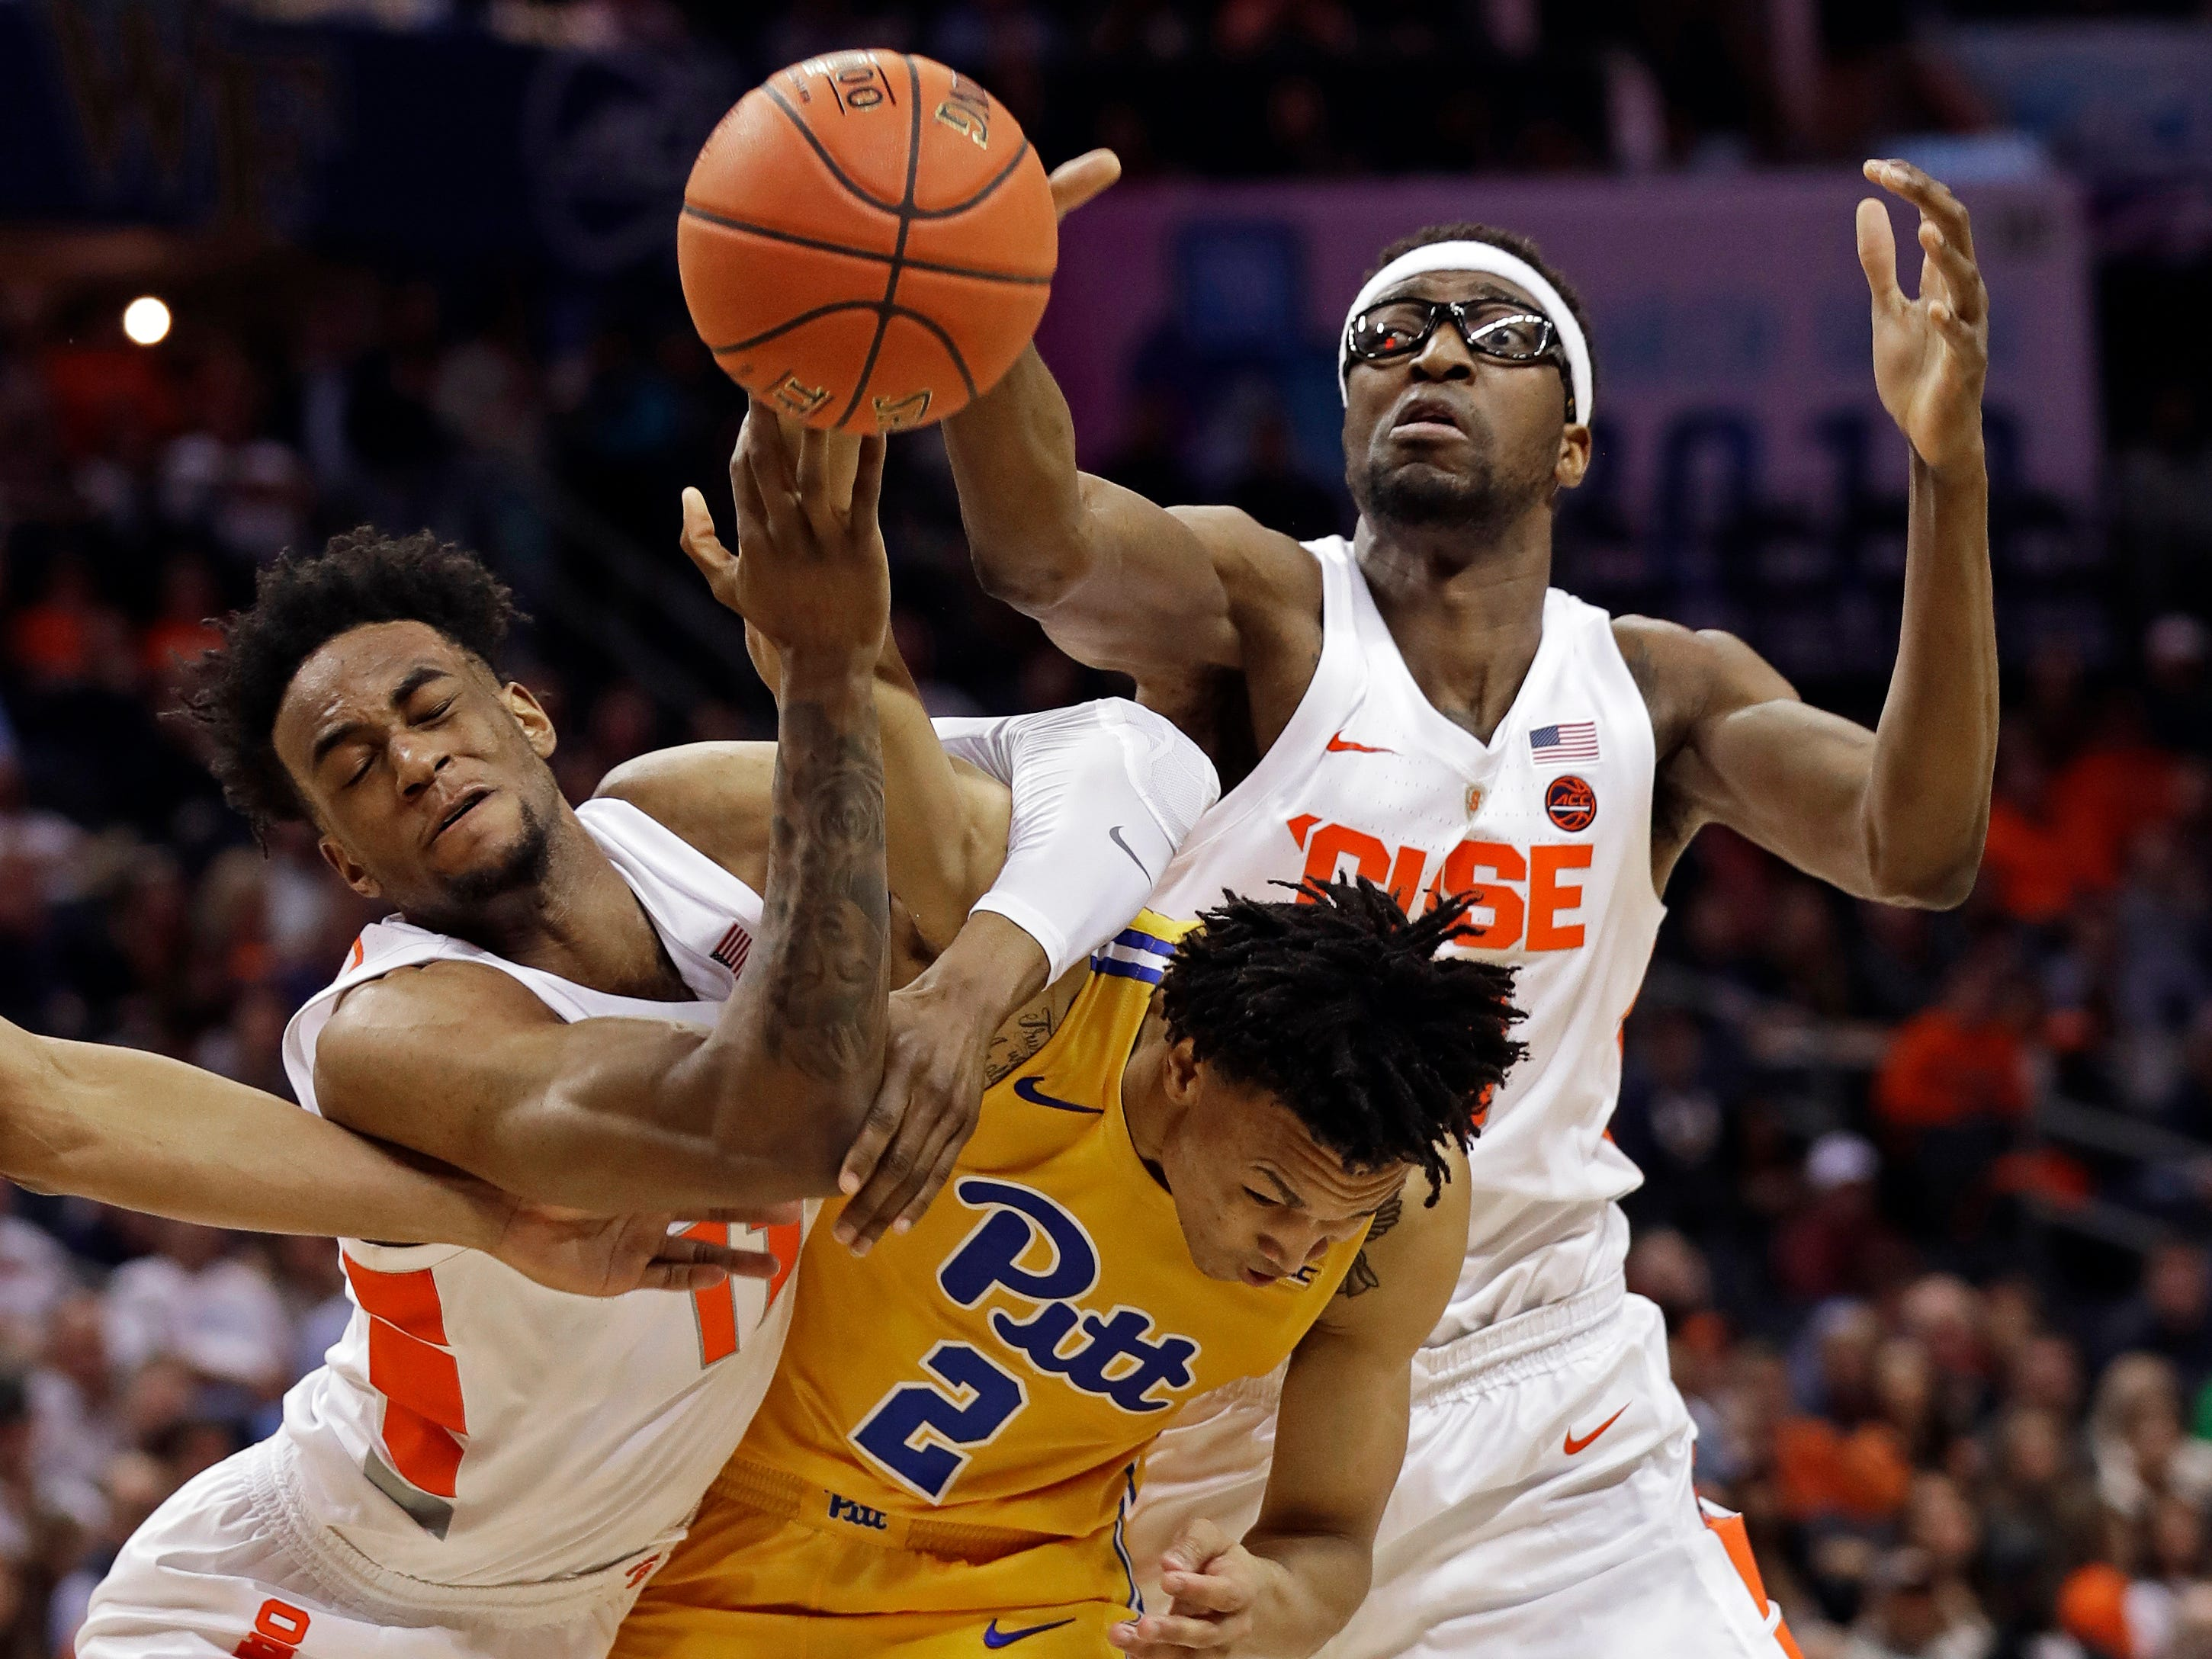 Pittsburgh's Trey McGowens (2) battles Syracuse's Paschal Chukwu, right, and Oshae Brissett, left, for a rebound during the first half of an NCAA college basketball game in the Atlantic Coast Conference tournament in Charlotte, N.C., Wednesday, March 13, 2019.